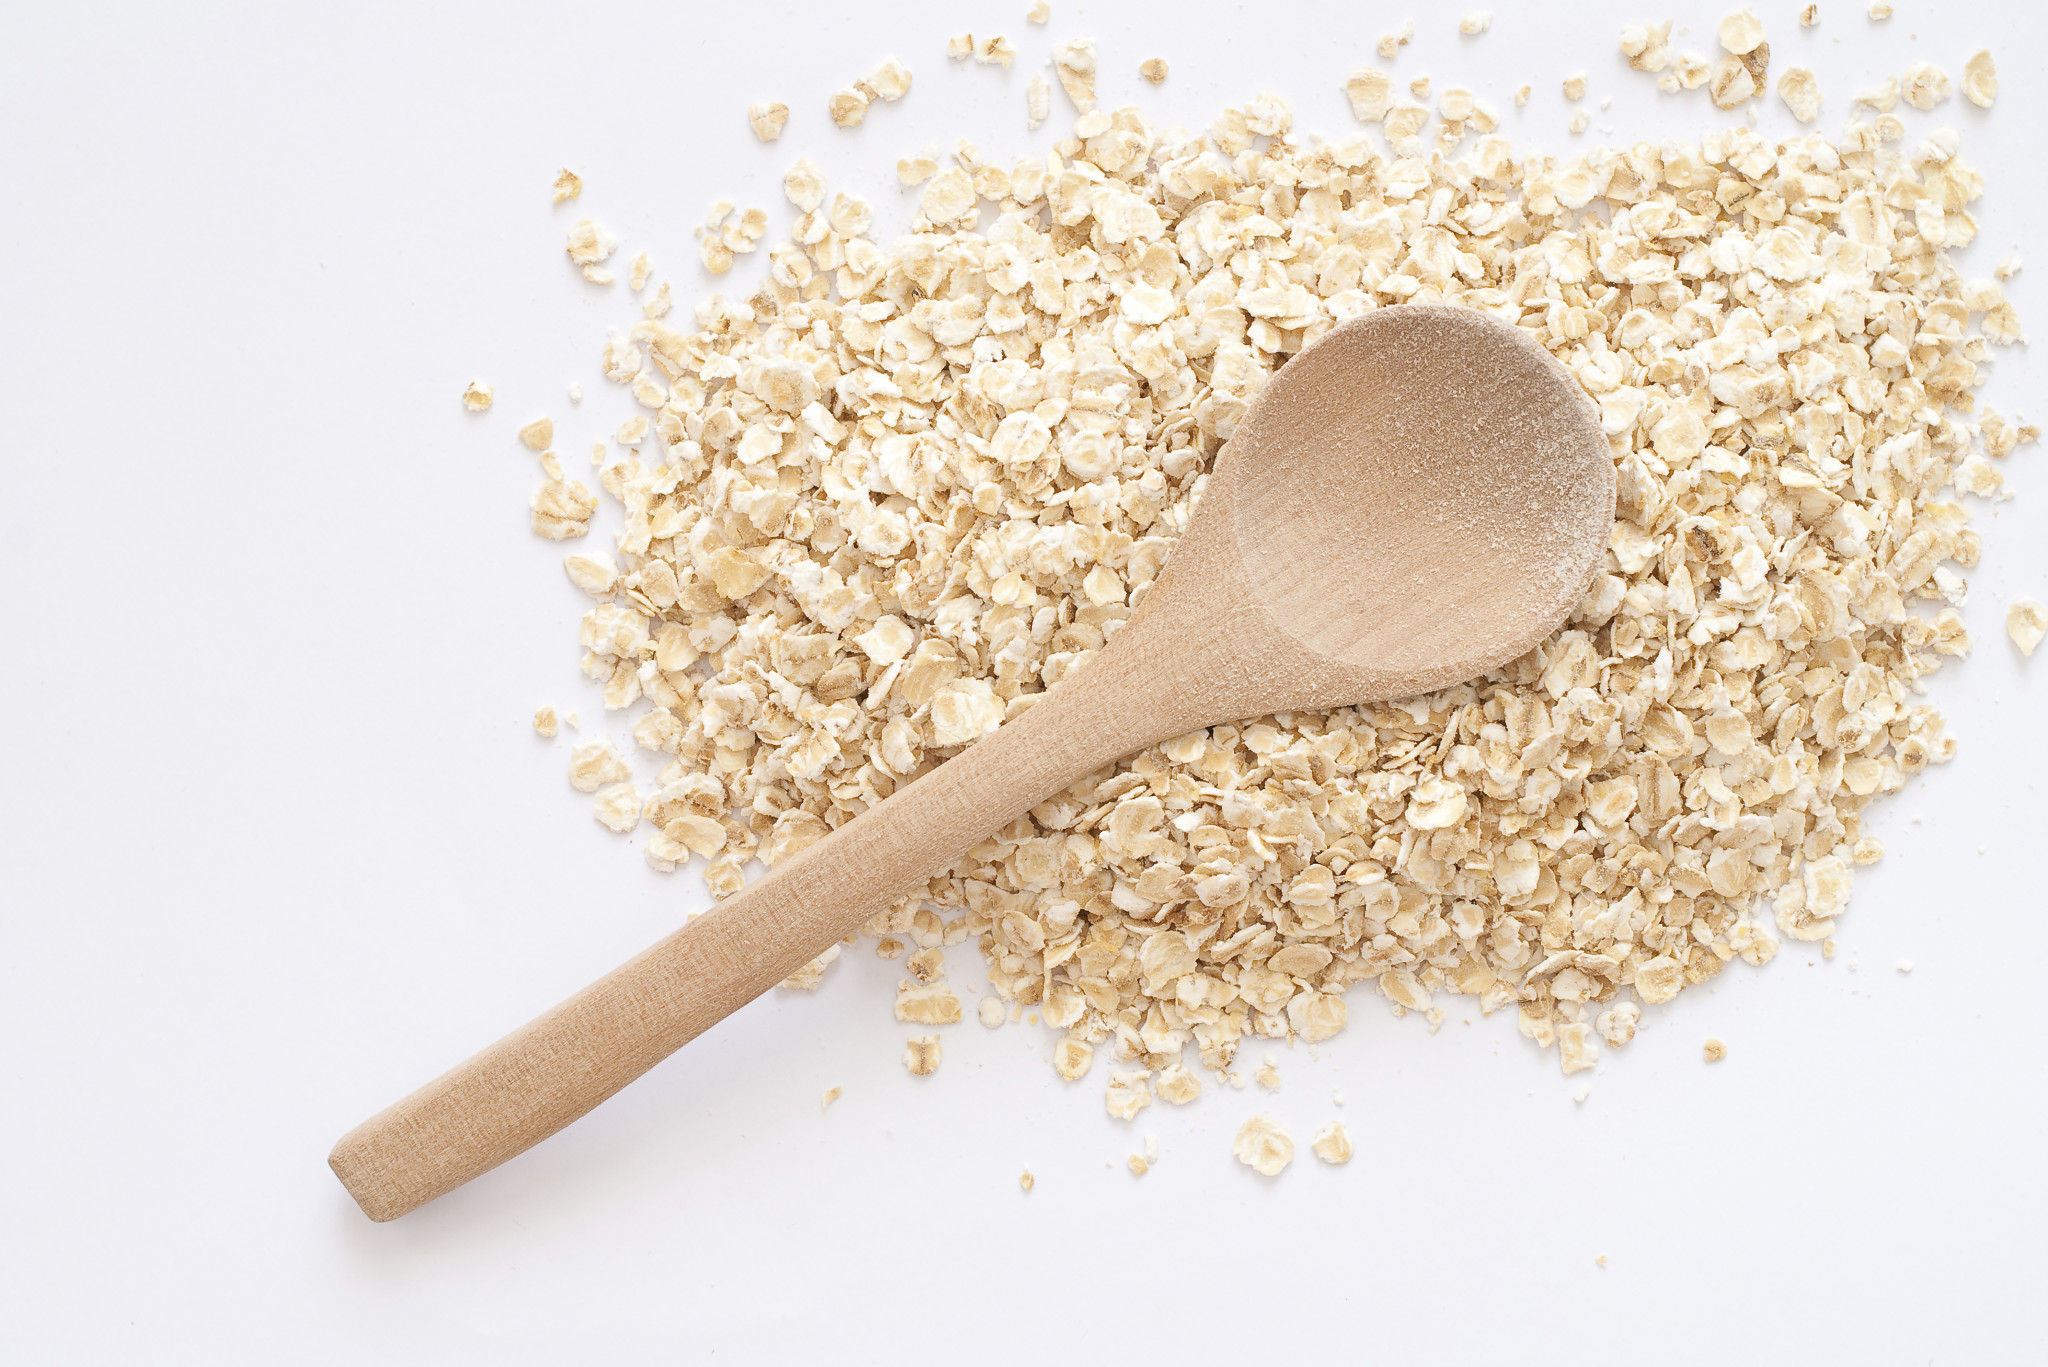 A large pile of oats with a wooden spoon